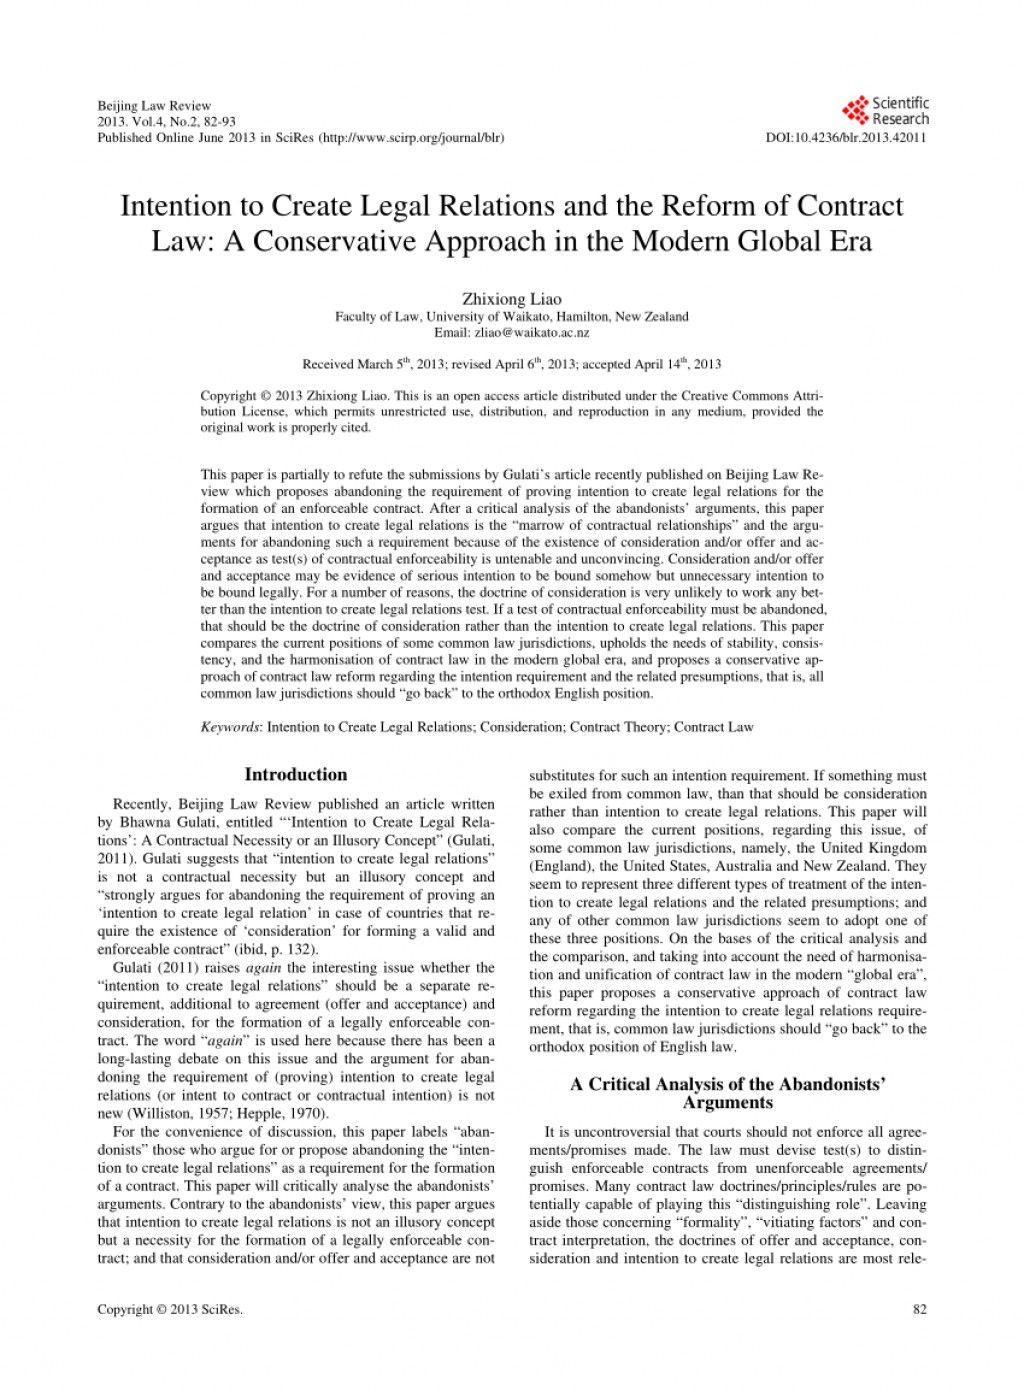 003 Largepreview Essay Example Intention To Create Legal Unbelievable Relations Large